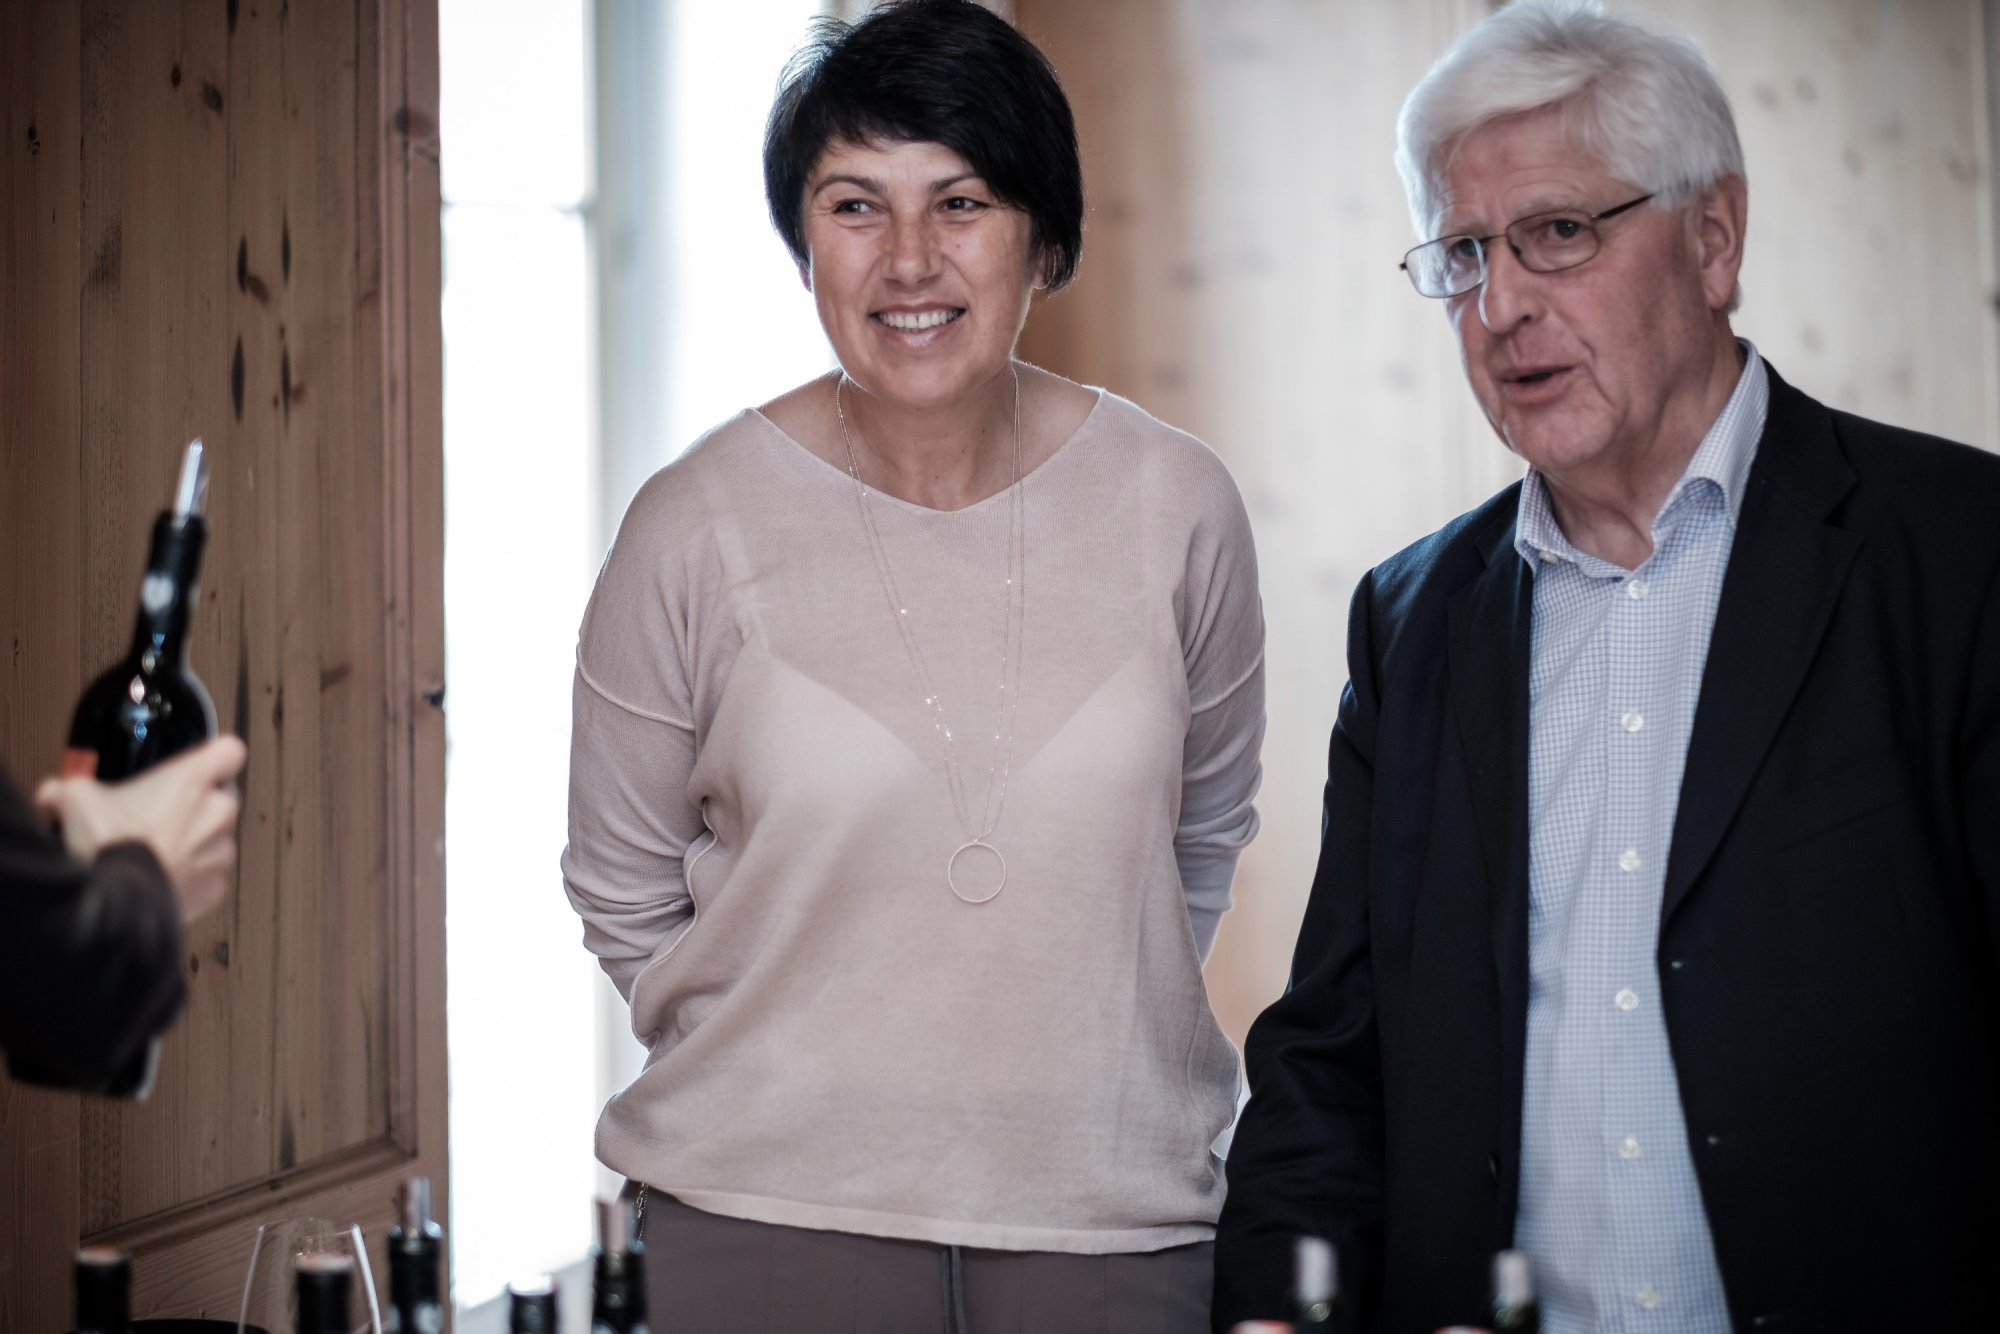 Gabi Kerschbaum & Paul Rittsteuer - Austrian Winemakers